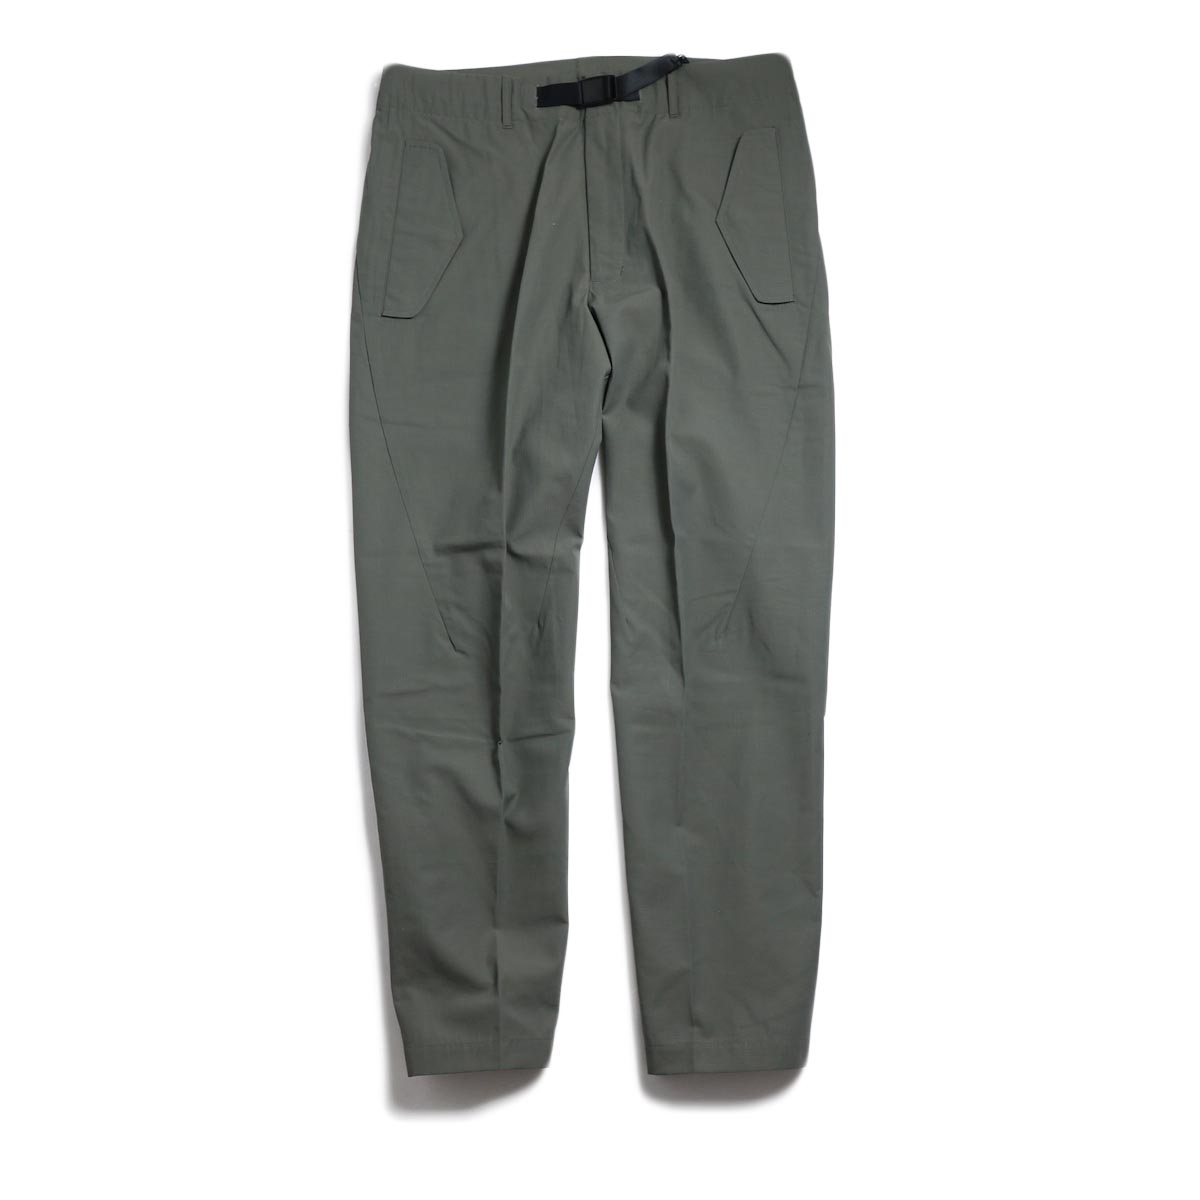 DESCENTE ddd / UNIFIT PANTS -GRAY